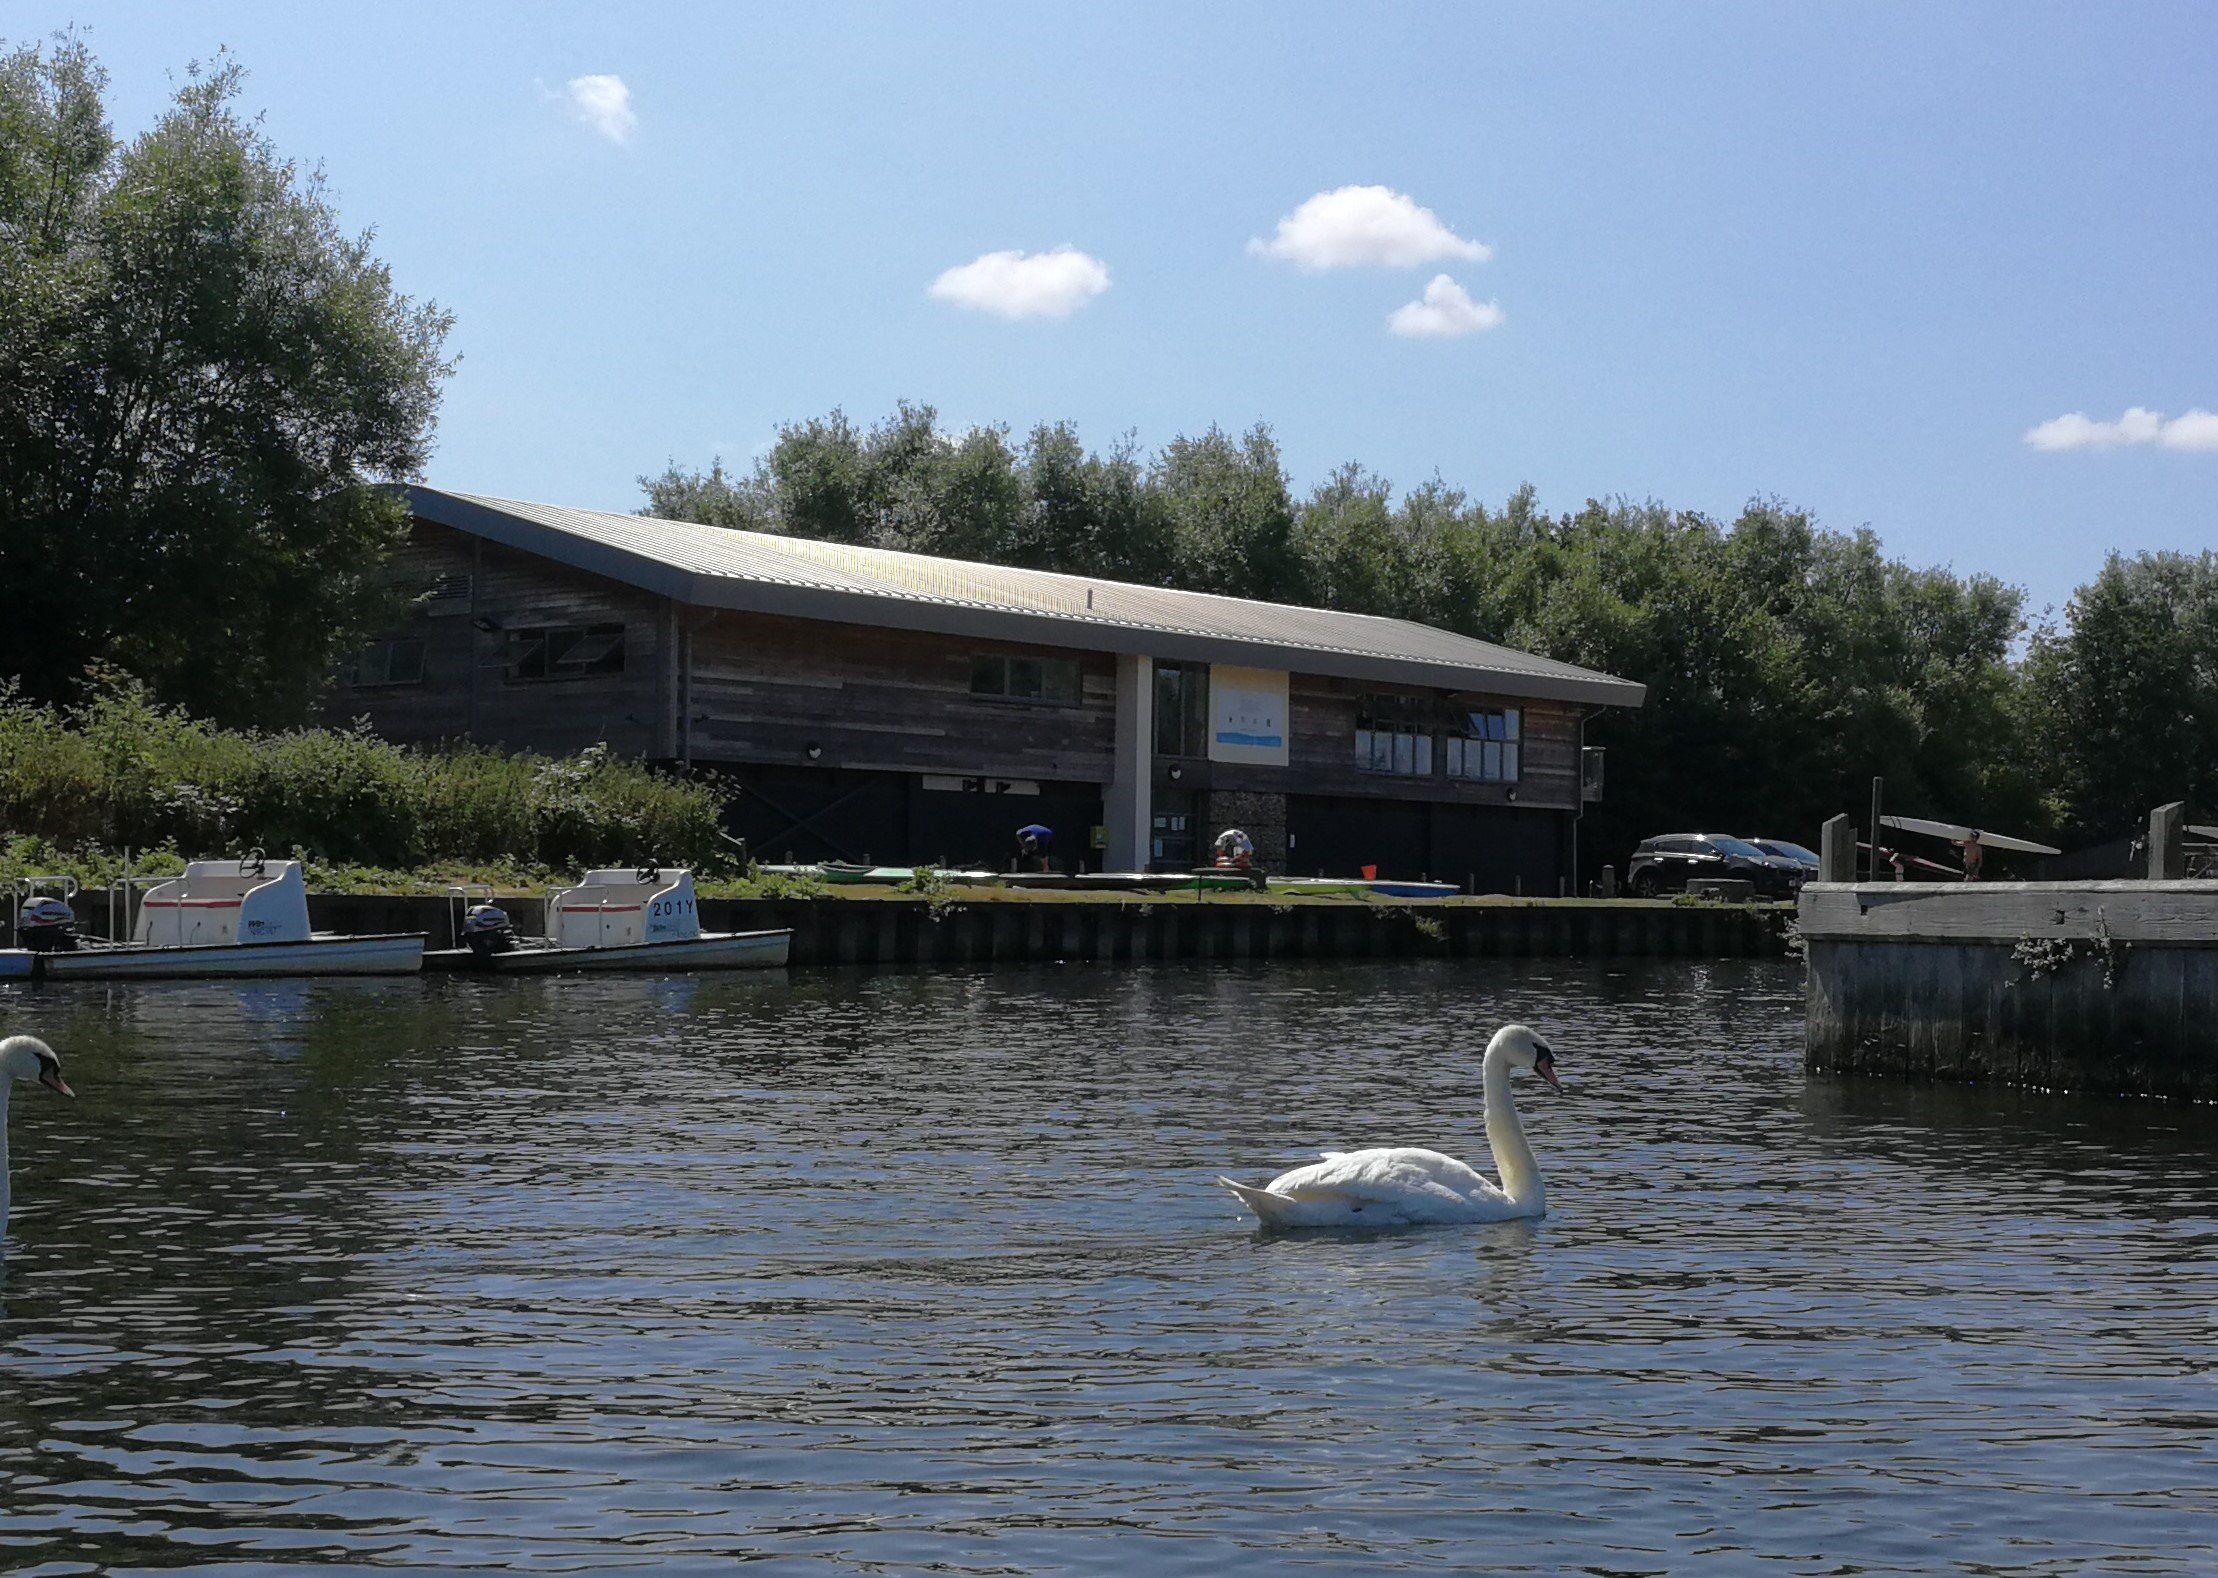 https://norwichcanoeclub.co.uk/wp-content/uploads/2018/09/Whitlingham-Boathouse-1.jpg